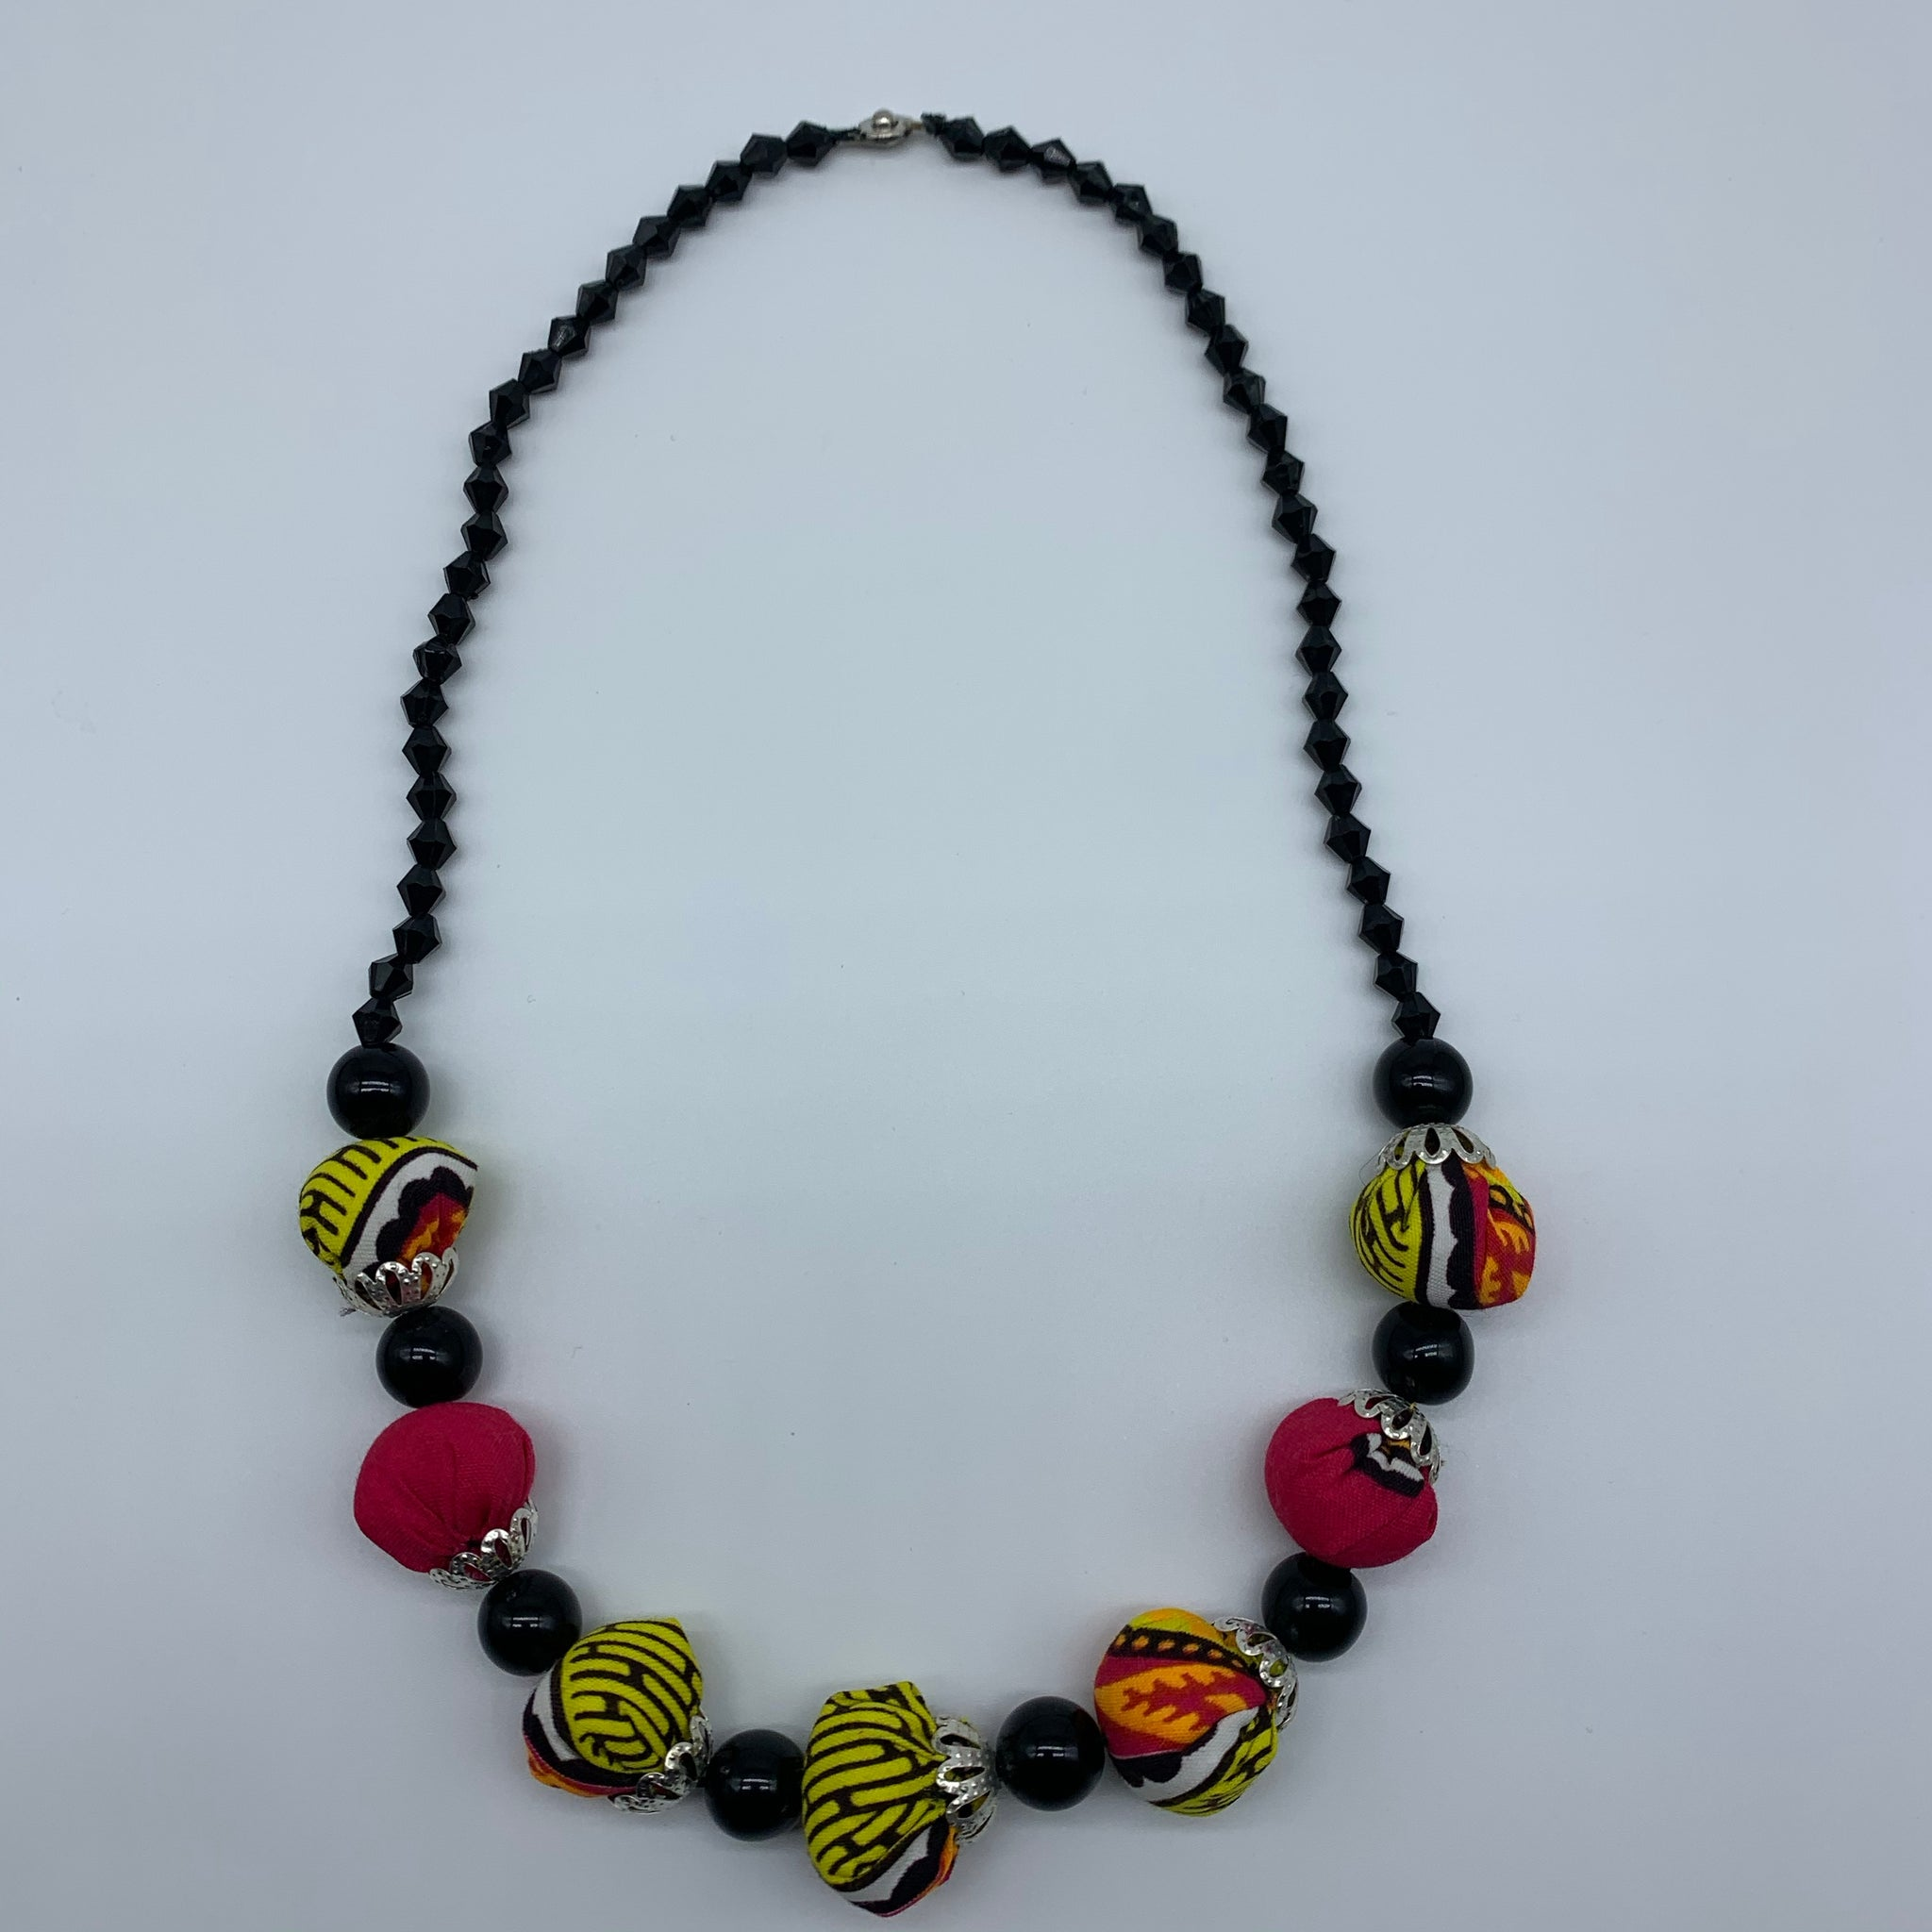 African Print Necklace W/ Beads-Pink Variation